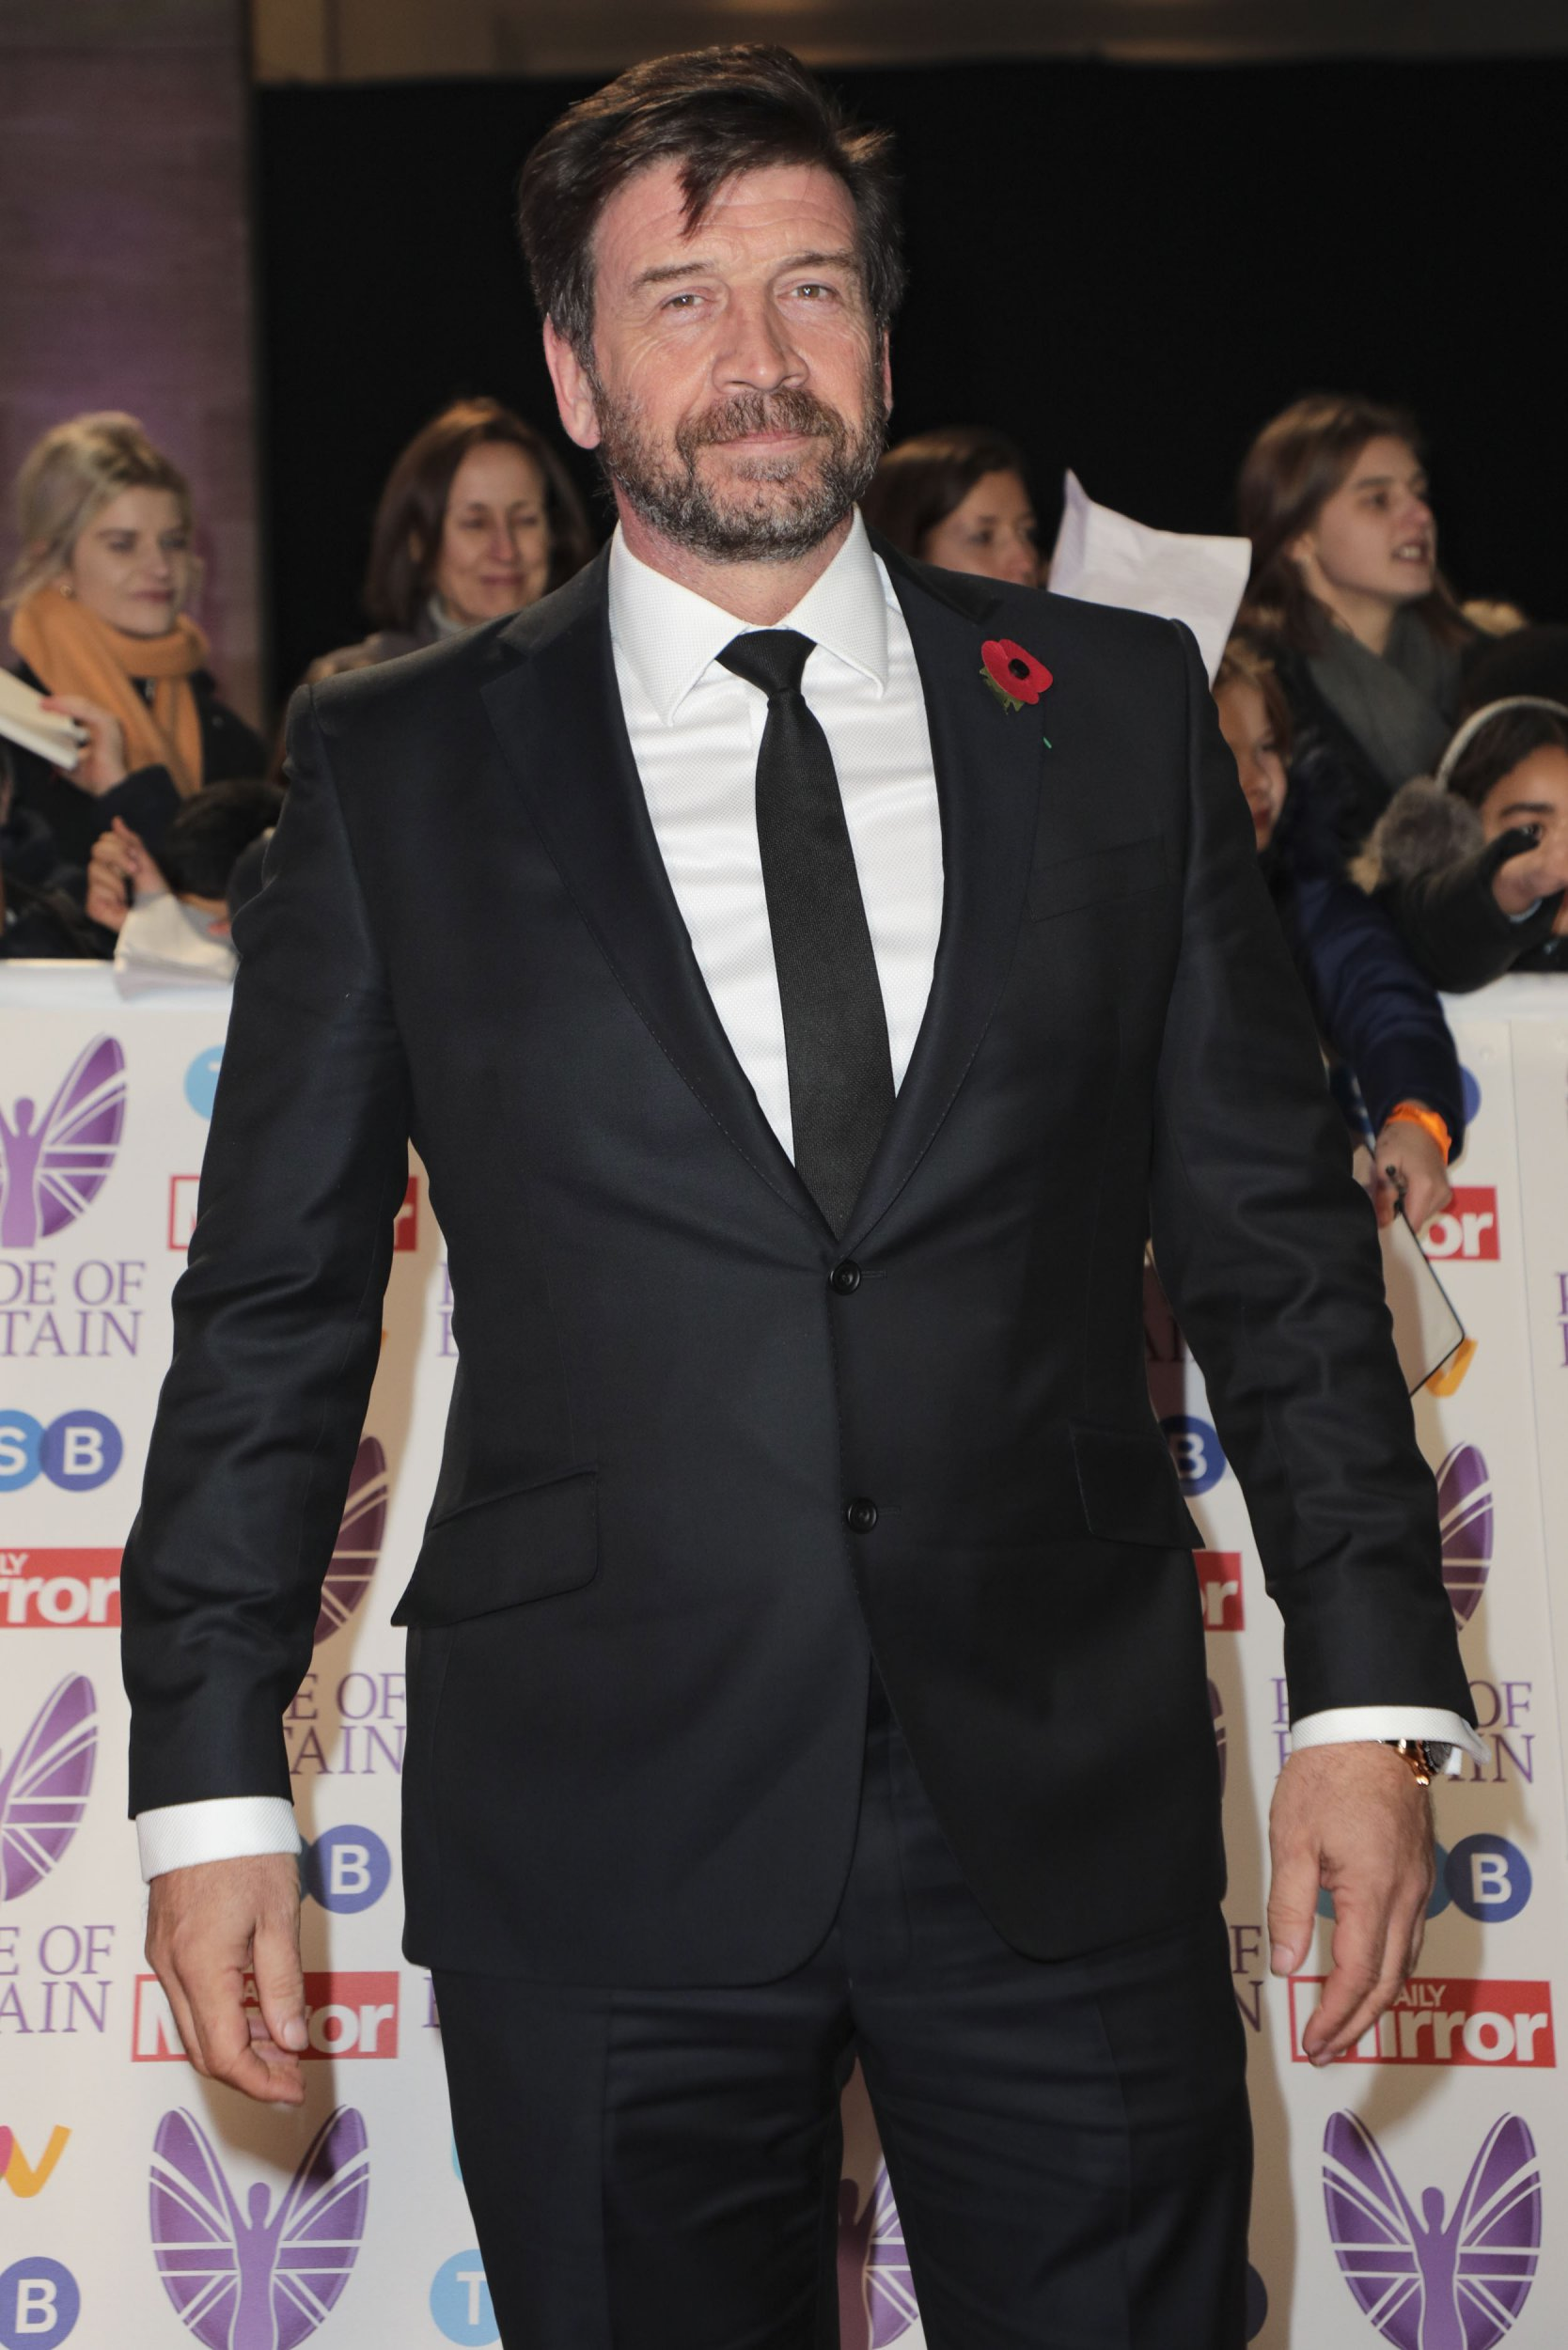 Nick Knowles at the Pride of Britain Awards, Grosvenor House, London, UK